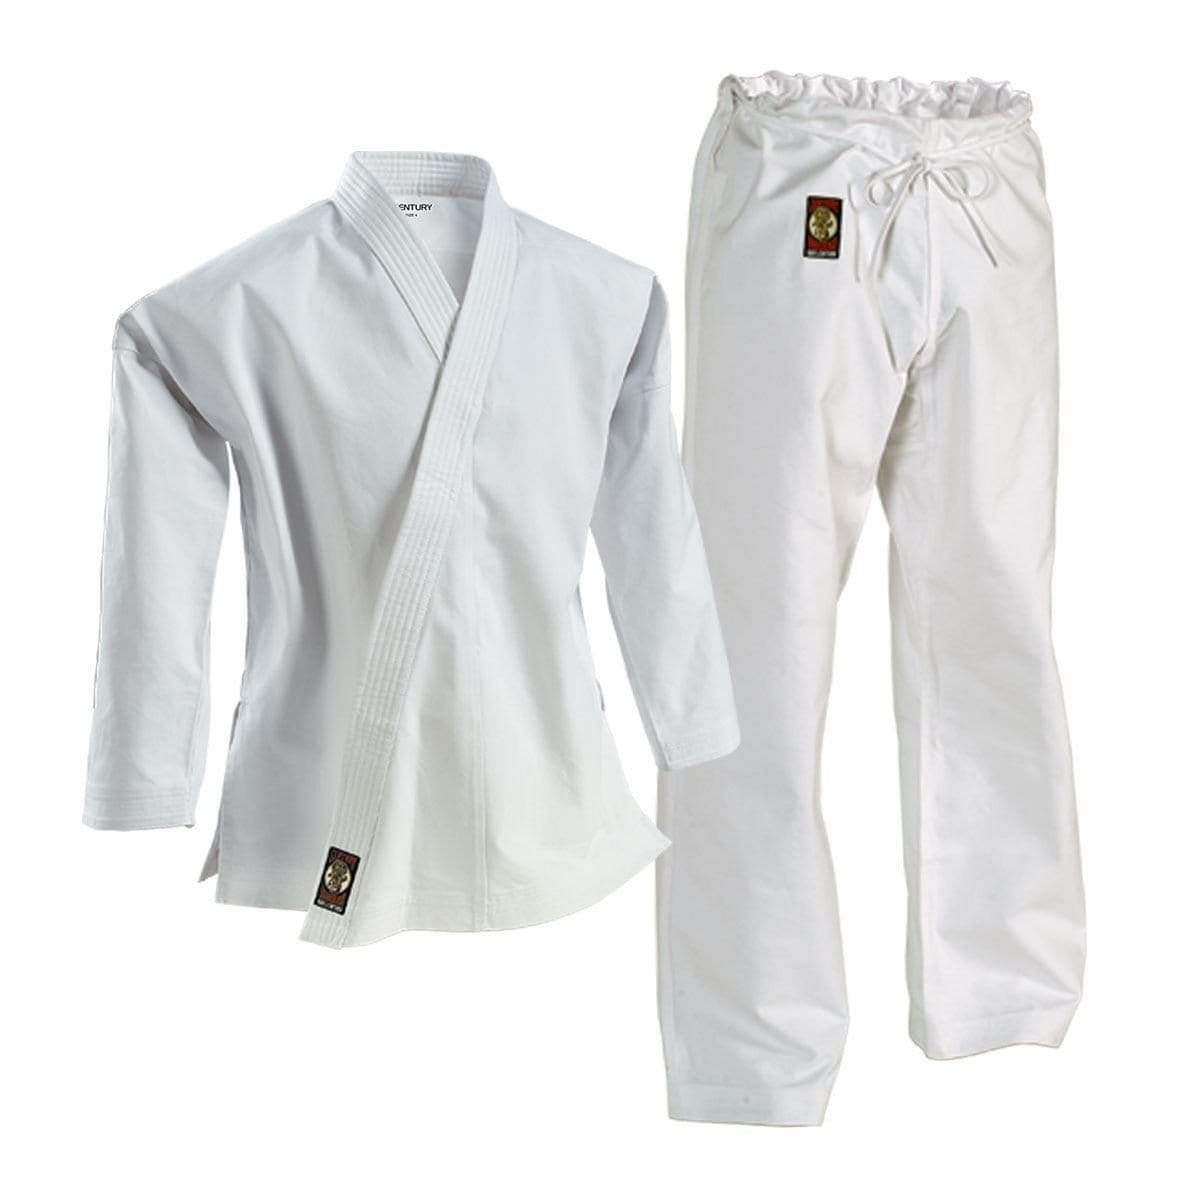 white Century 14 oz Ironman Uniform  Karate Martial Arts c04981